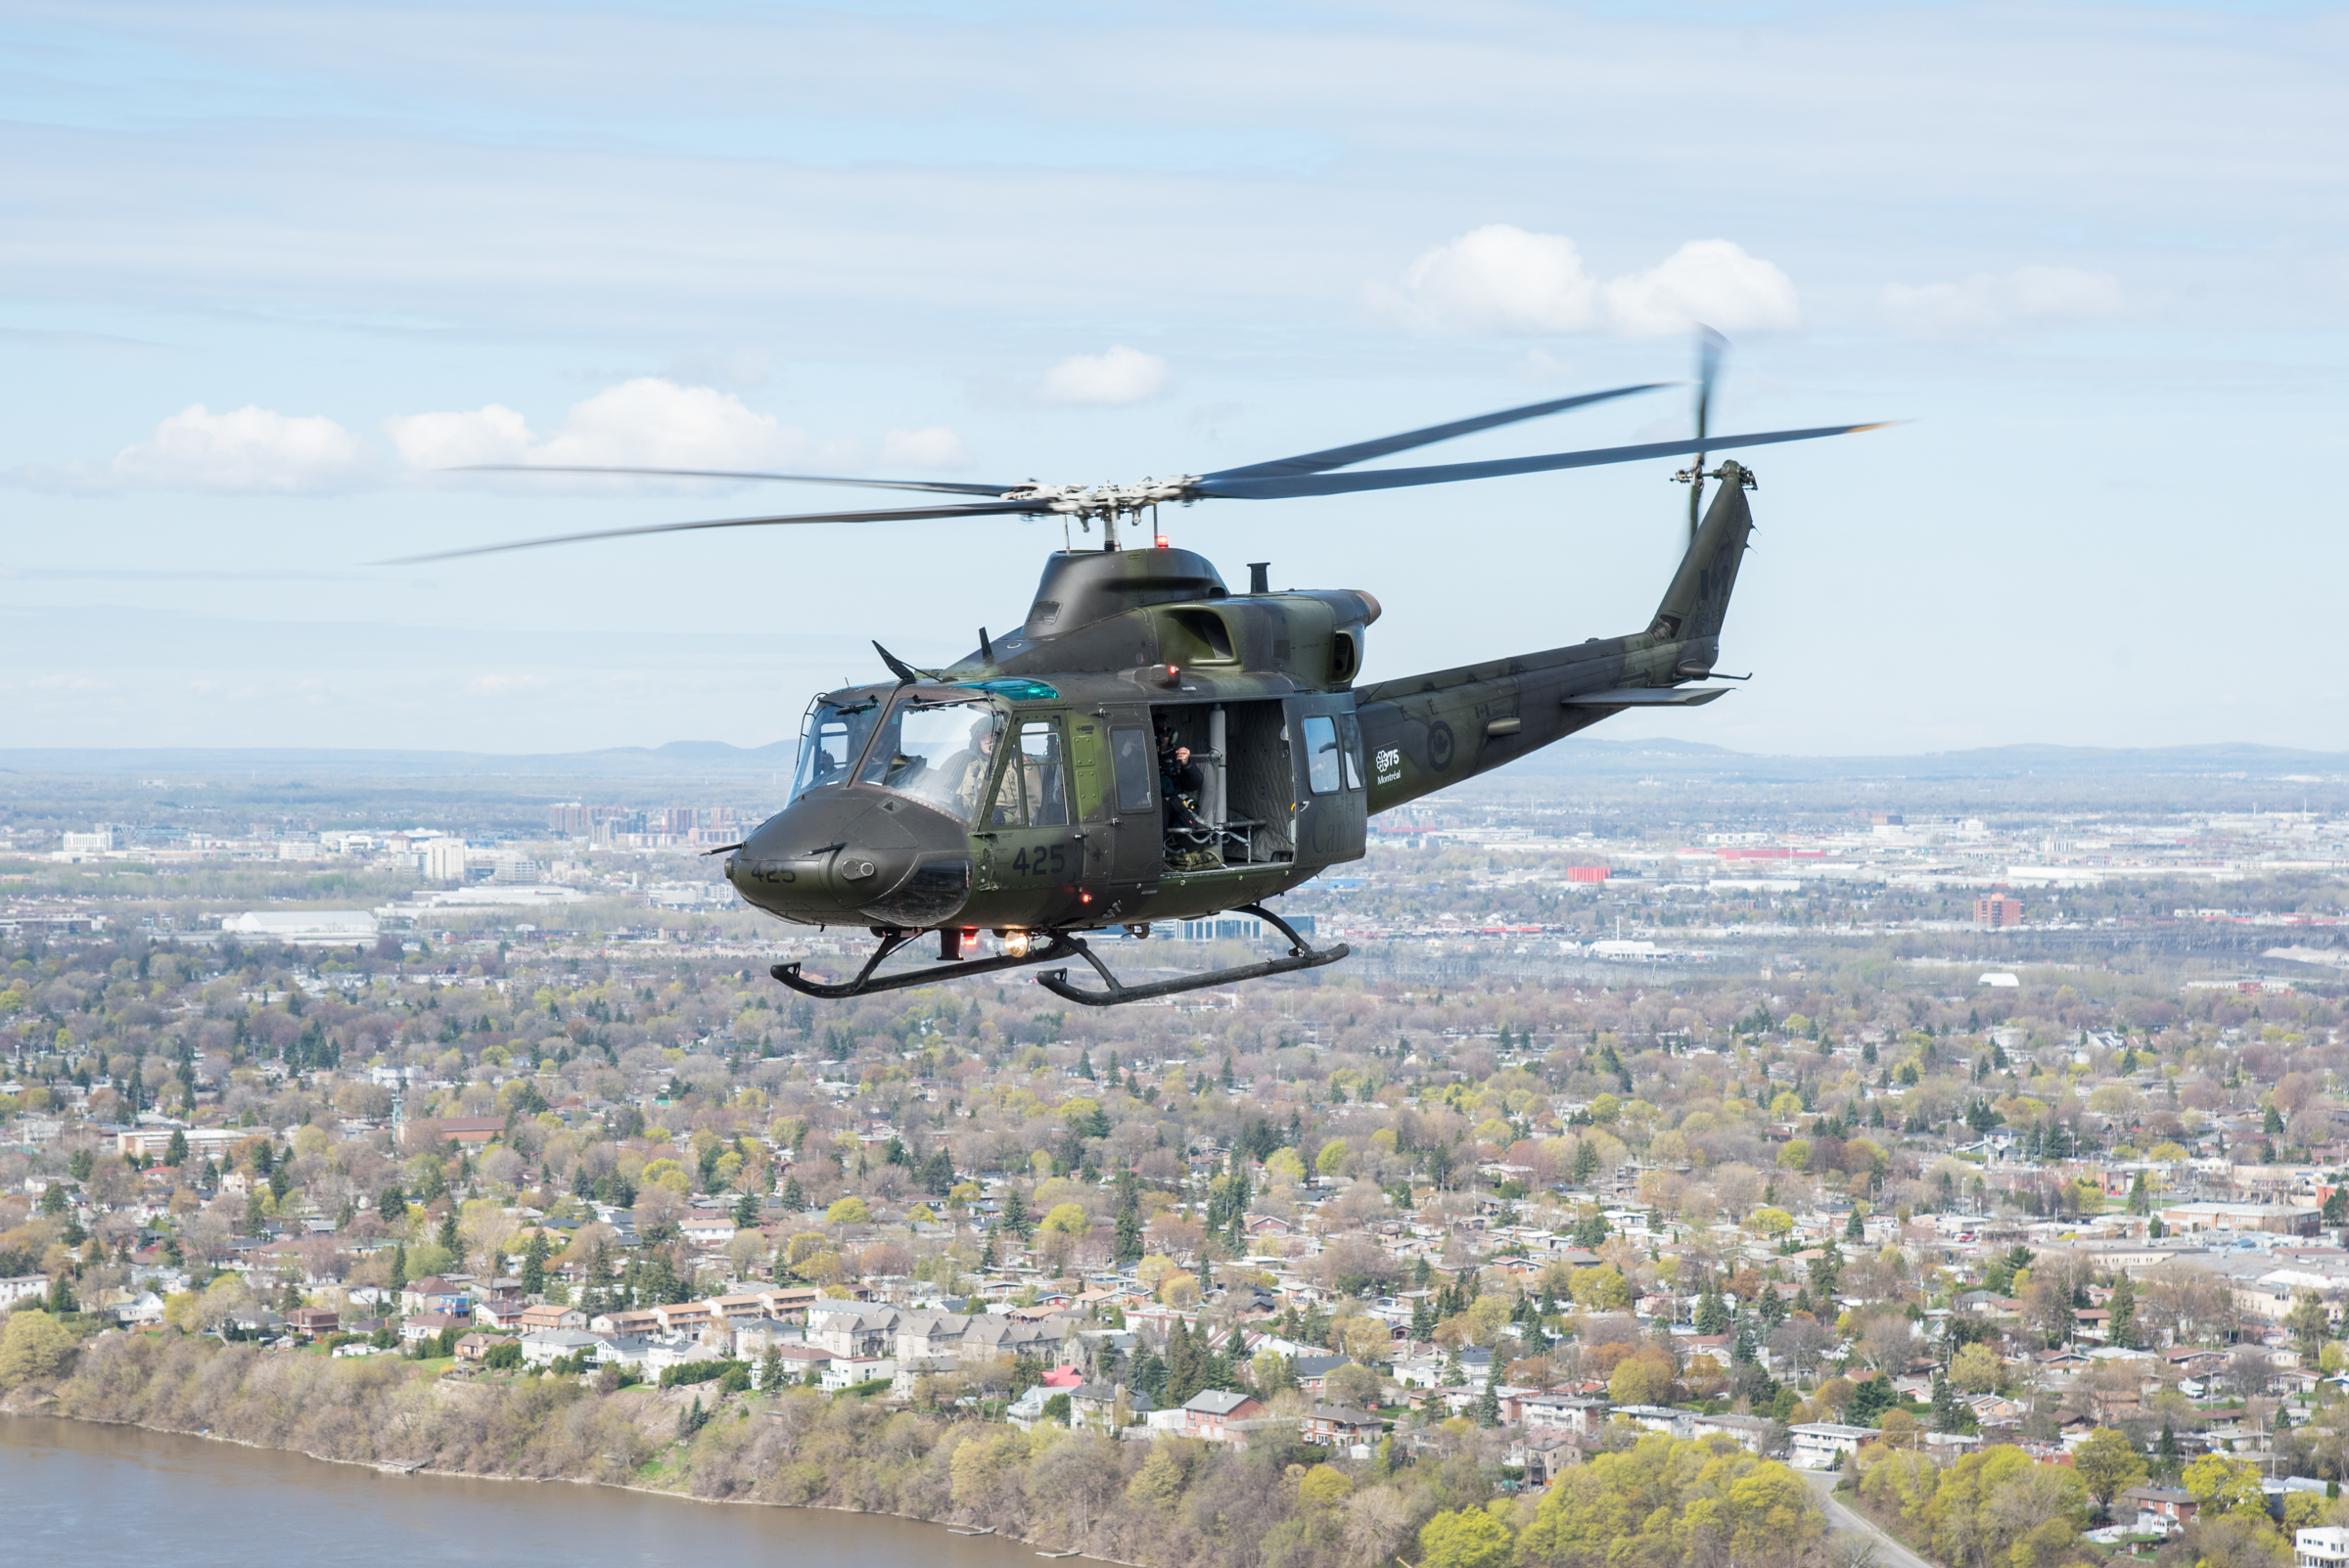 Reconnaissance flight from the Greater Montreal area to Berthierville, Quebec, a CH-146 Griffon from 438 Tactical Helicopter Squadron, Saint-Hubert, Royal Canadian Air Force, Operation Lentus, May 10, 2017